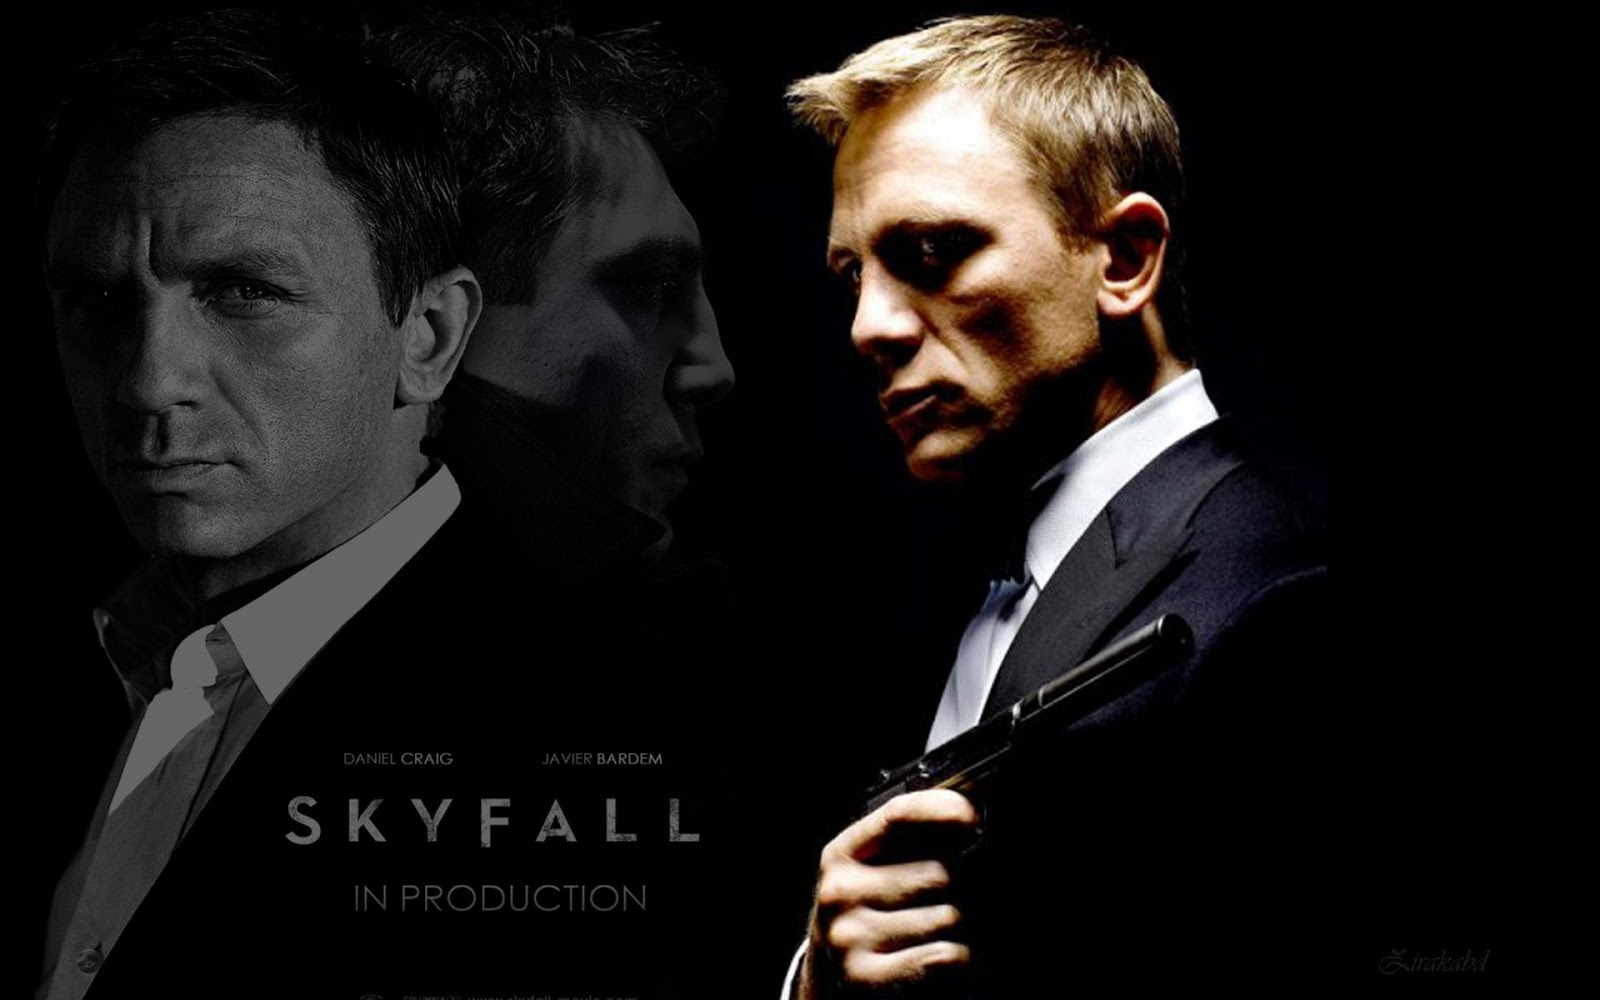 Hd wallpaper james bond skyfall movie hd wallpapers - James bond images hd ...